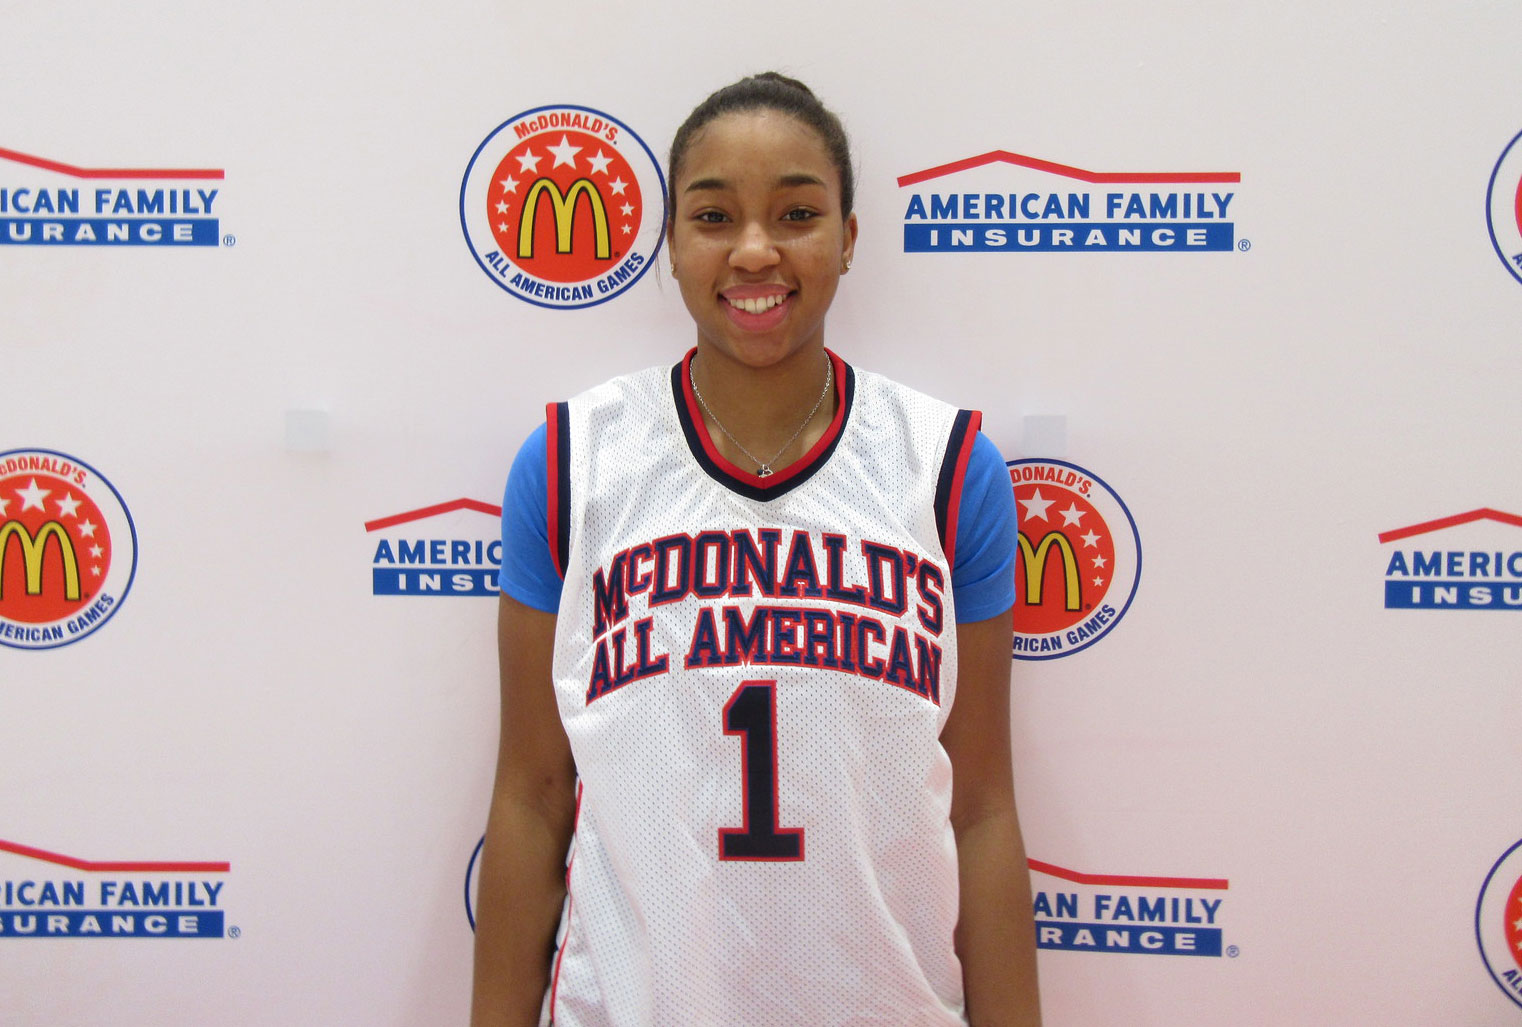 Megan Walker (Photo: McDAAG)